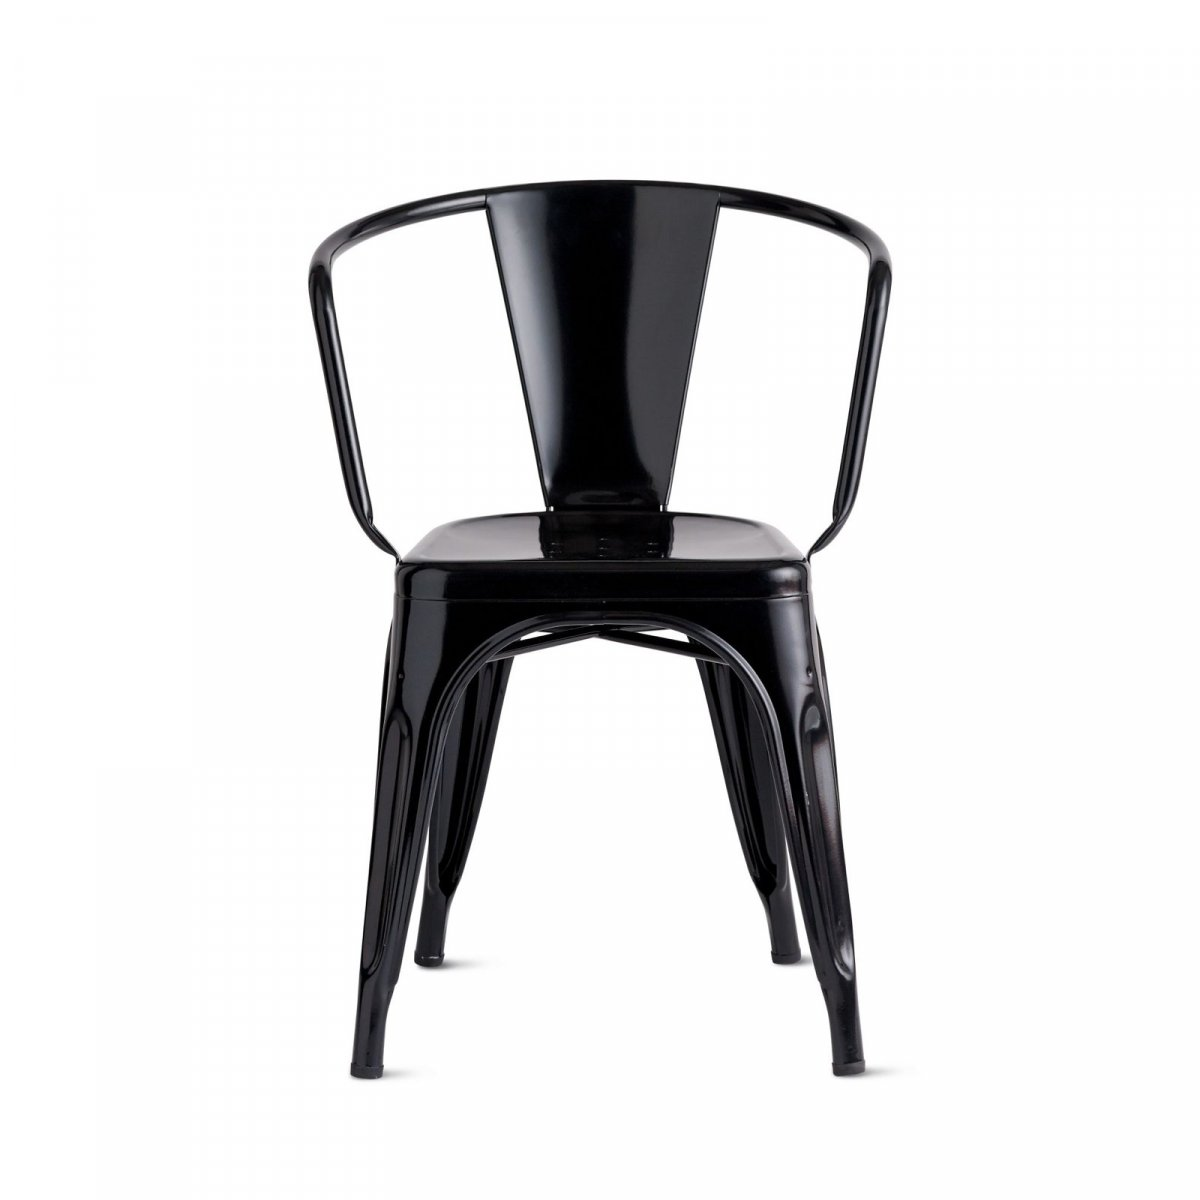 A56 Armchair, black.